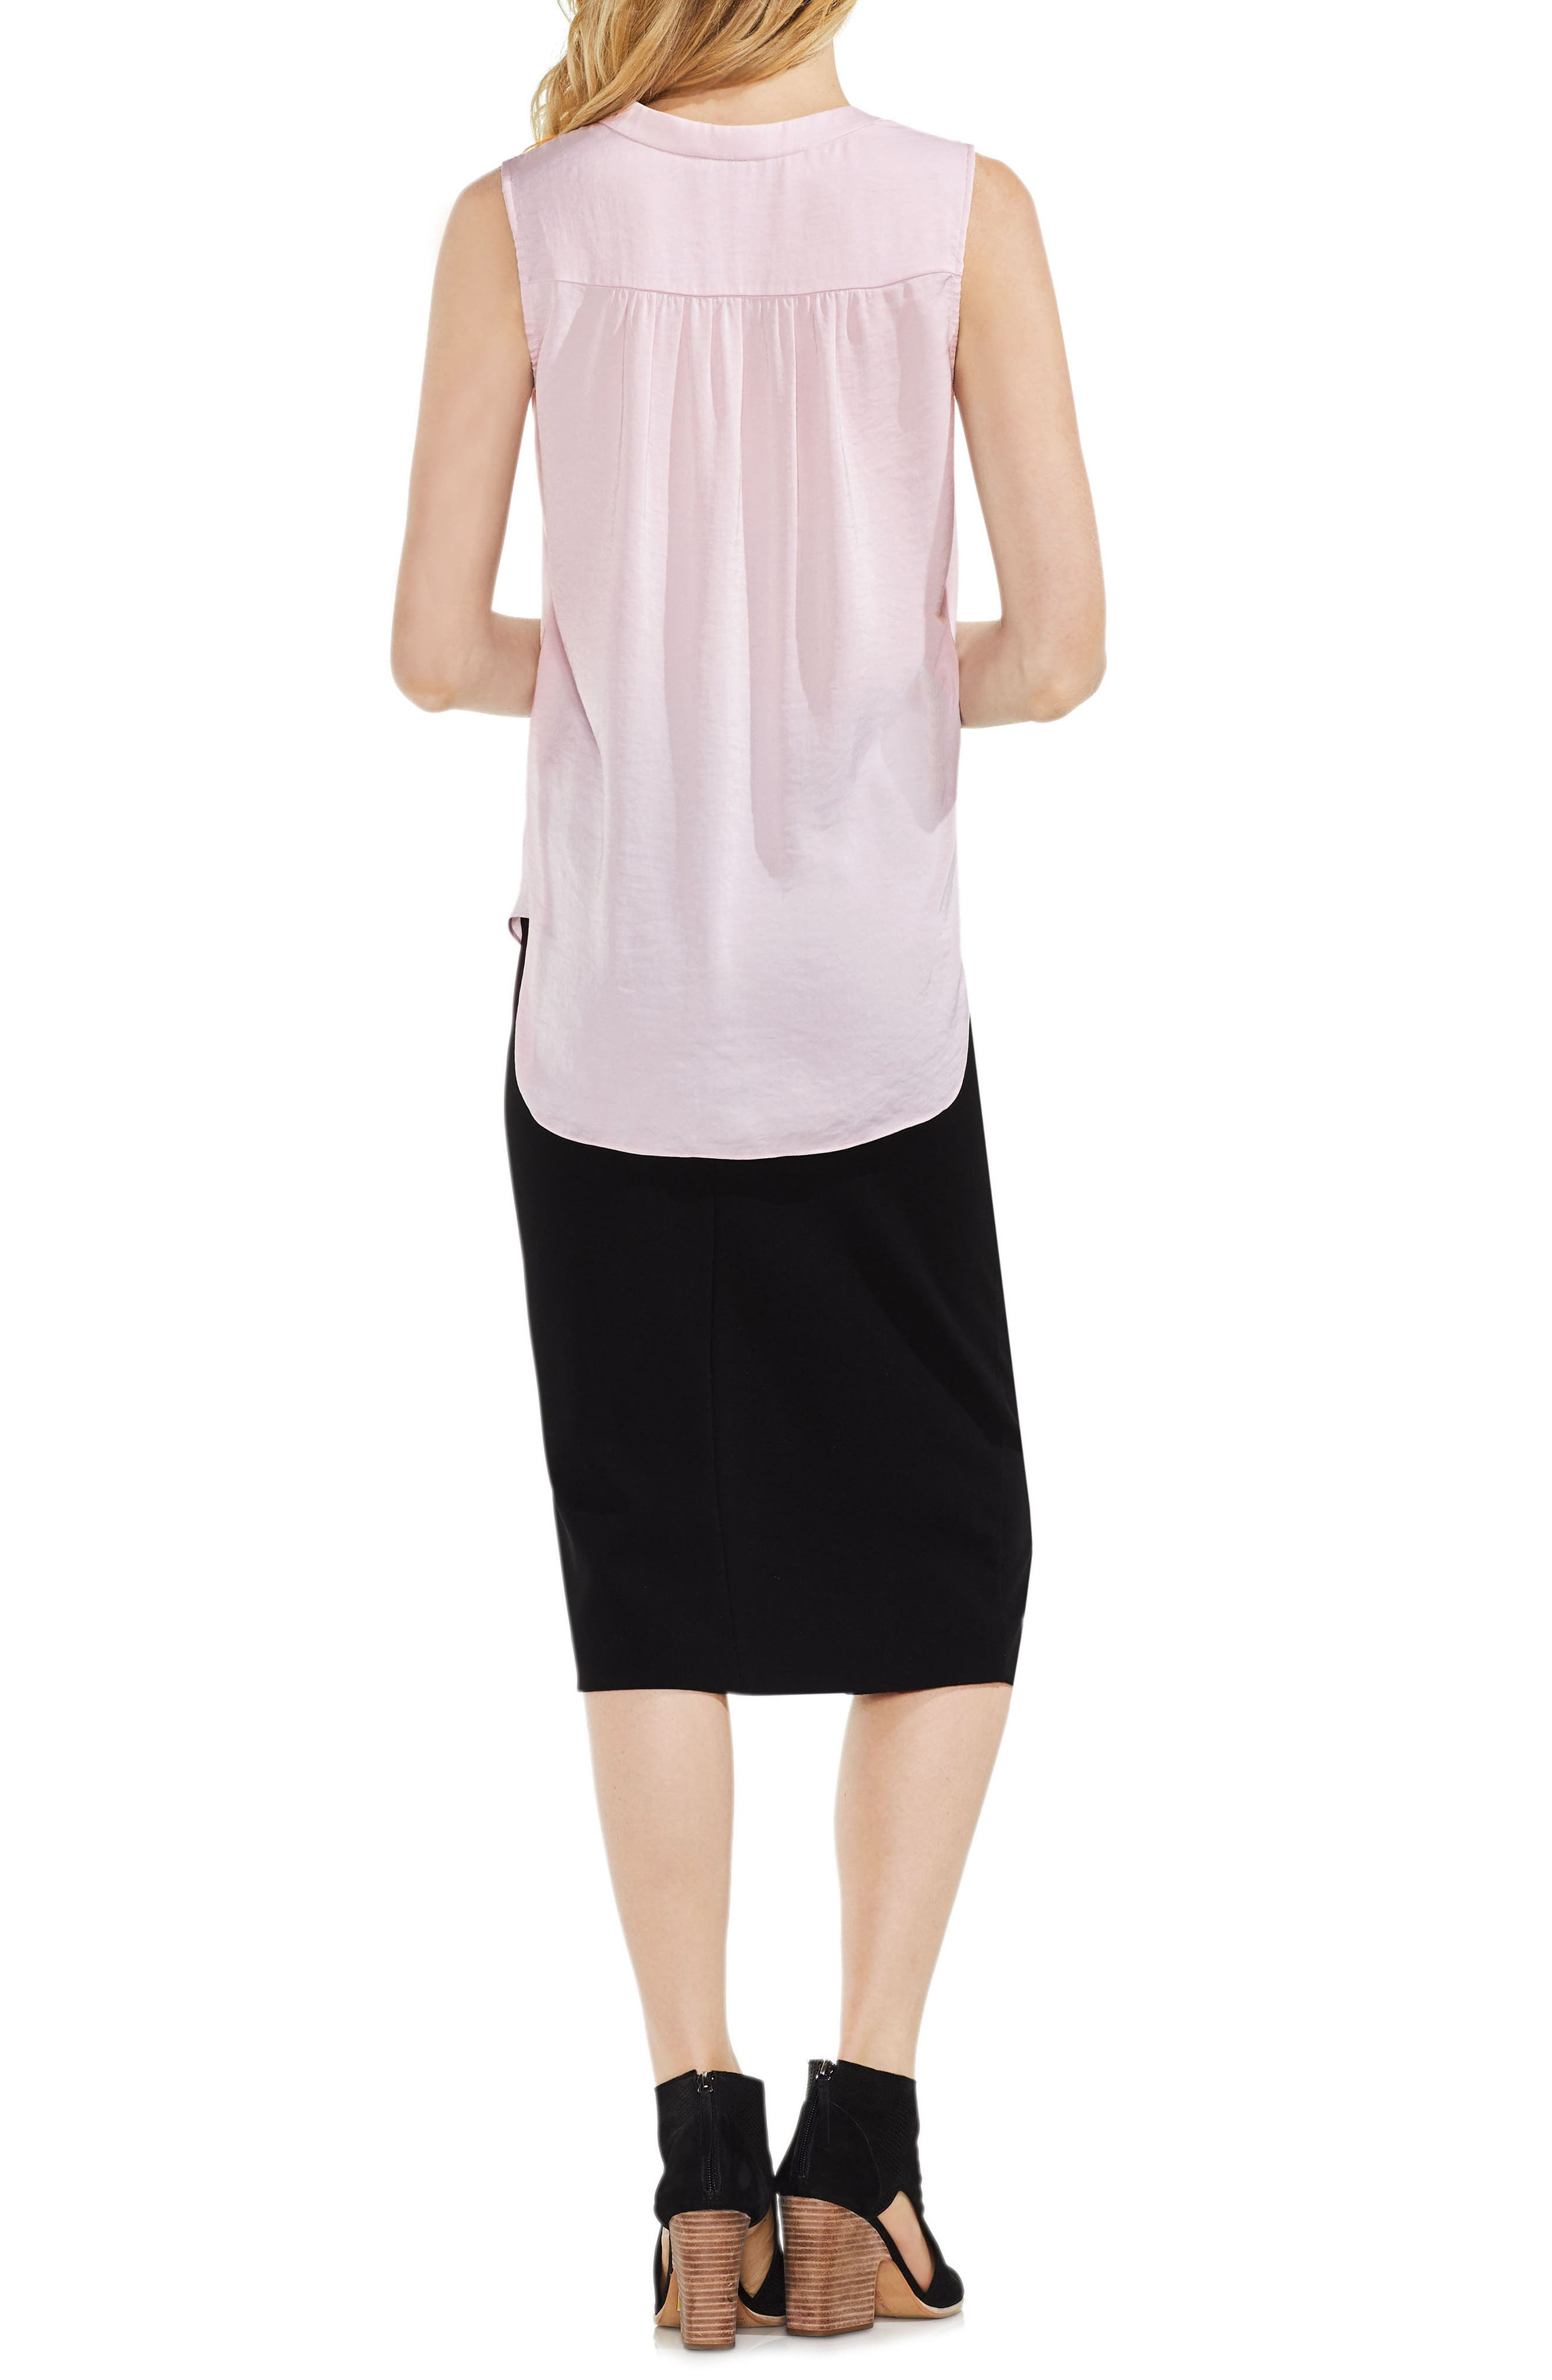 VINCE CAMUTO, Rumpled Satin Blouse, Alternate thumbnail 4, color, PINK BLISS